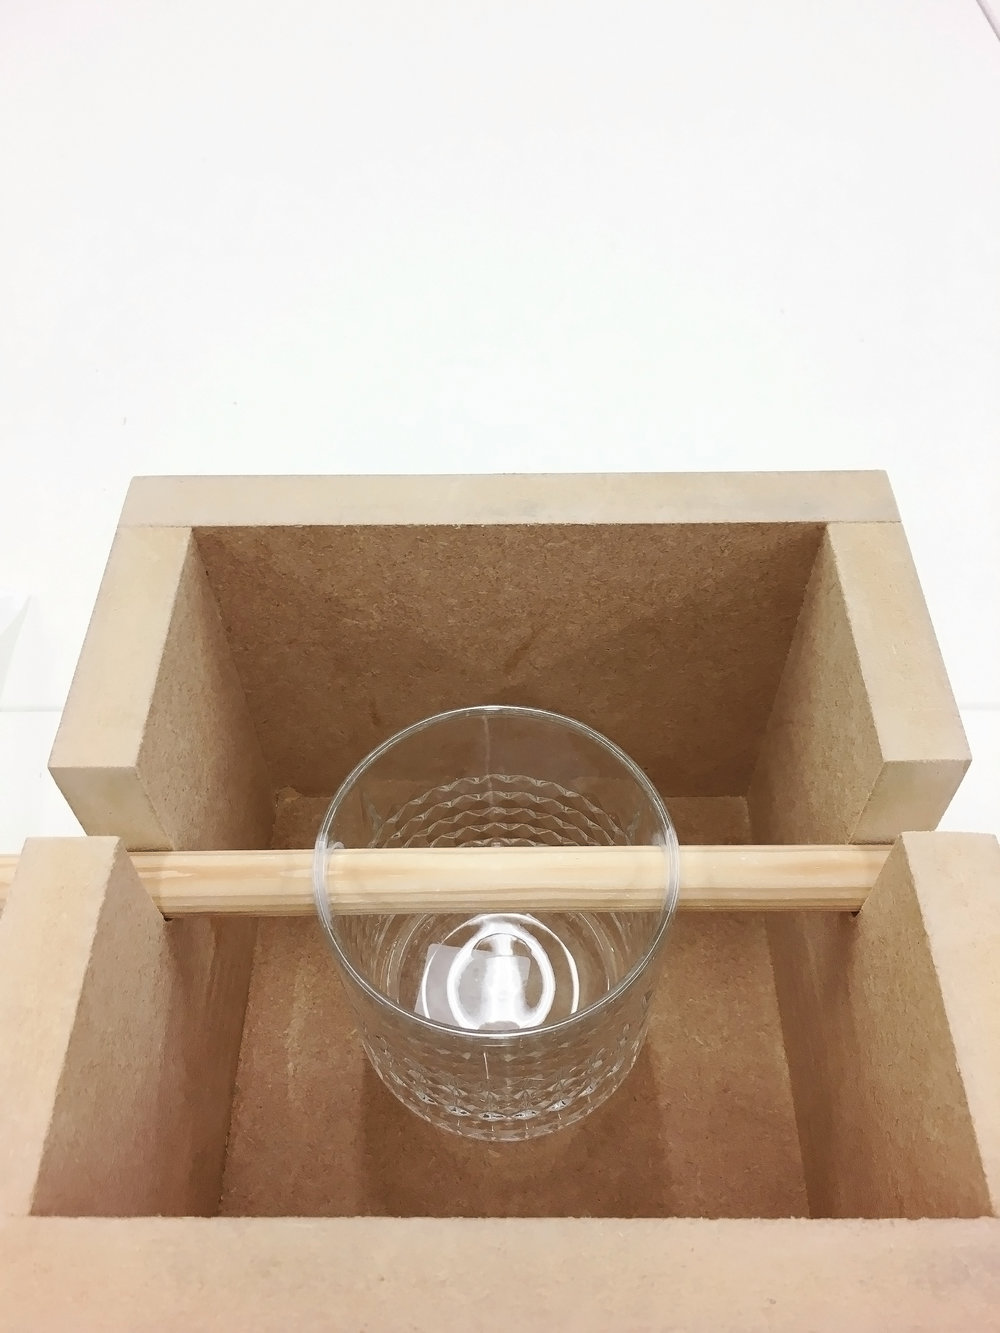 The new Quaich system is based on mutual body interaction between the two participants. They stand face to face, one holds the wooden bar, the other holds the bottom of the glass slowly tilting it to aid the partner to drink. This quaich embodies understanding, trust, induction and care which can be felt during its use.